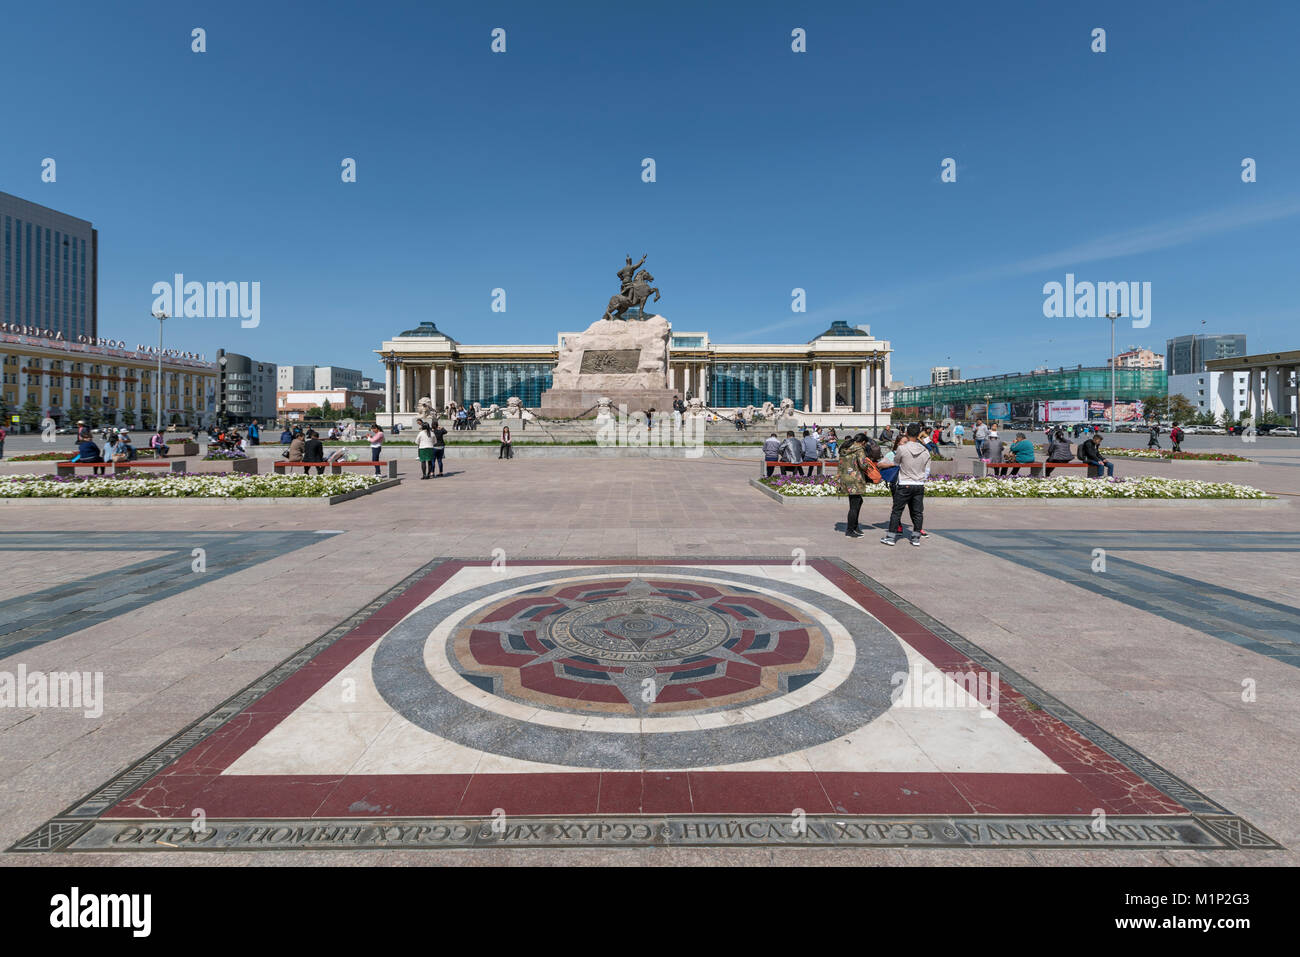 Tourists in Sukhbaatar square with Damdin Sukhbaatar statue, Ulan Bator, Mongolia, Central Asia, Asia - Stock Image